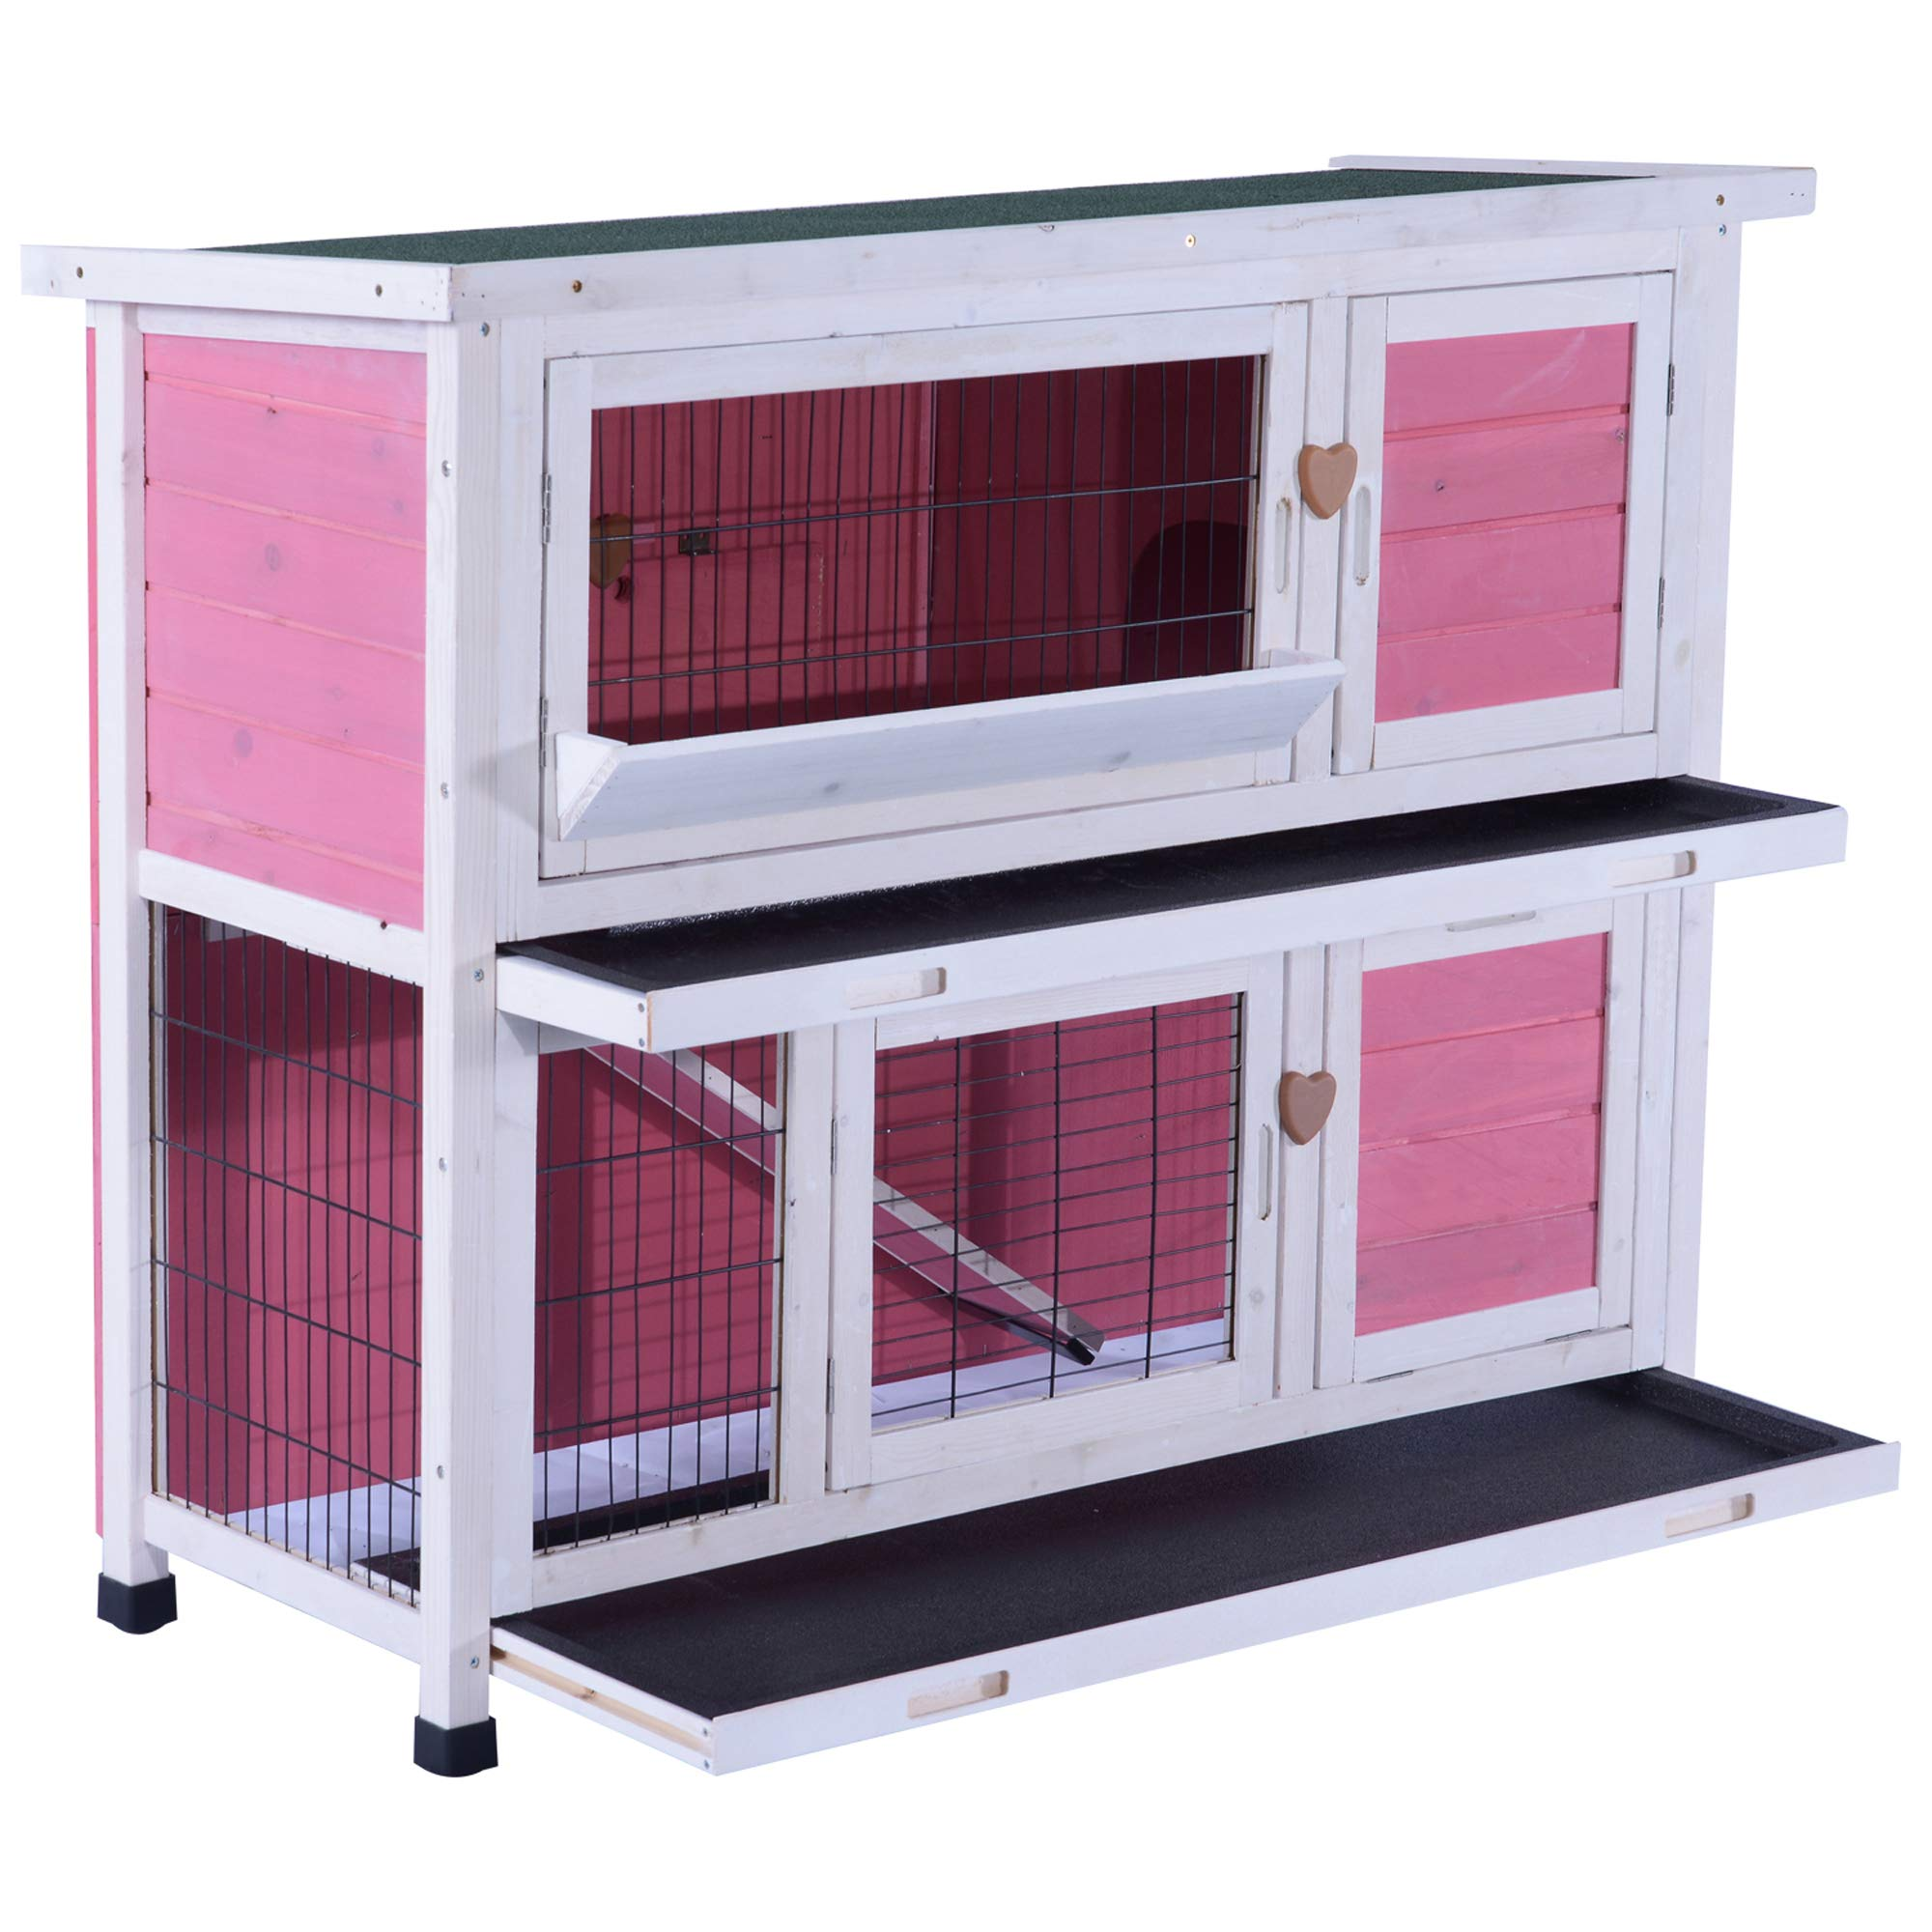 Lovupet 40inch 2-Story Wooden Rabbit Hutch Small Animal House Pet Cage Chicken Coop with Tray and Feed Trough 0323 by MCombo